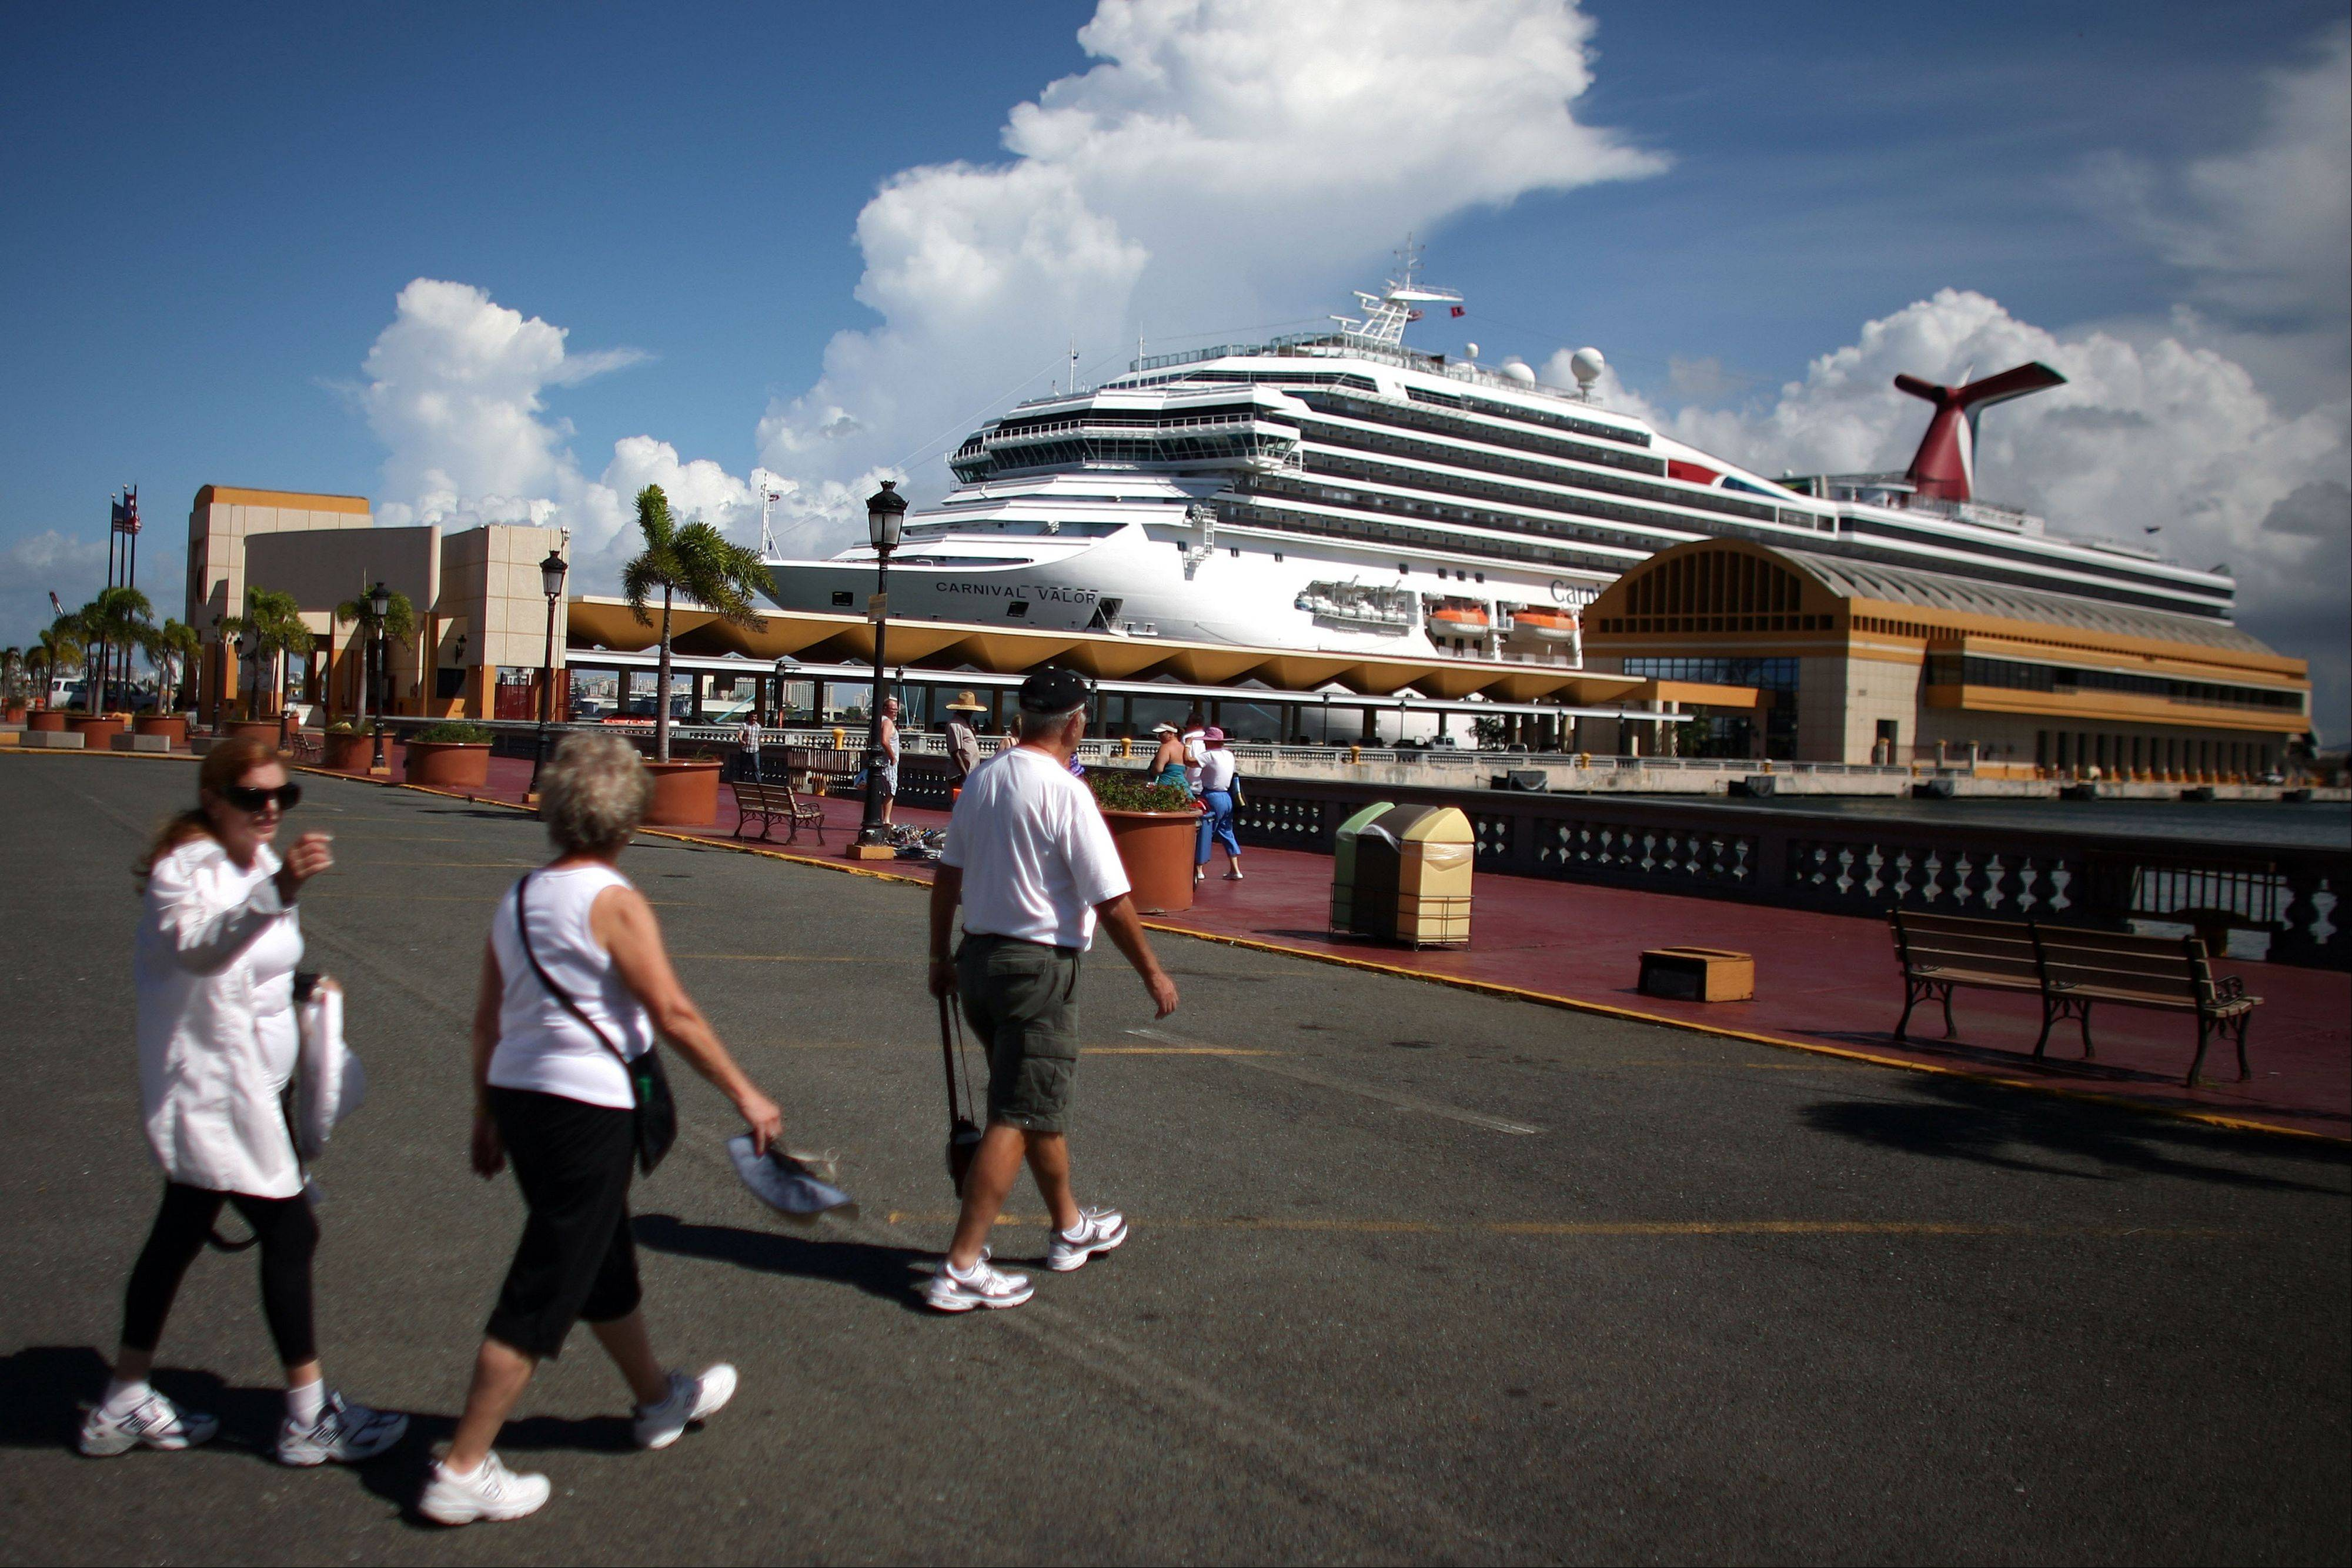 Tourists walk through a parking lot in front of a pier where a cruise ship is docked in Old San Juan, Puerto Rico. Trade groups say the flourishing cruise ship industry injects about $2 billion a year into the economies of the Caribbean, the worldís No. 1 cruise destination, but critics complain that it produces relatively little local revenue because so many passengers dine, shop and purchase heavily marked-up shore excursions on the boats or splurge at international chain shops on the piers.